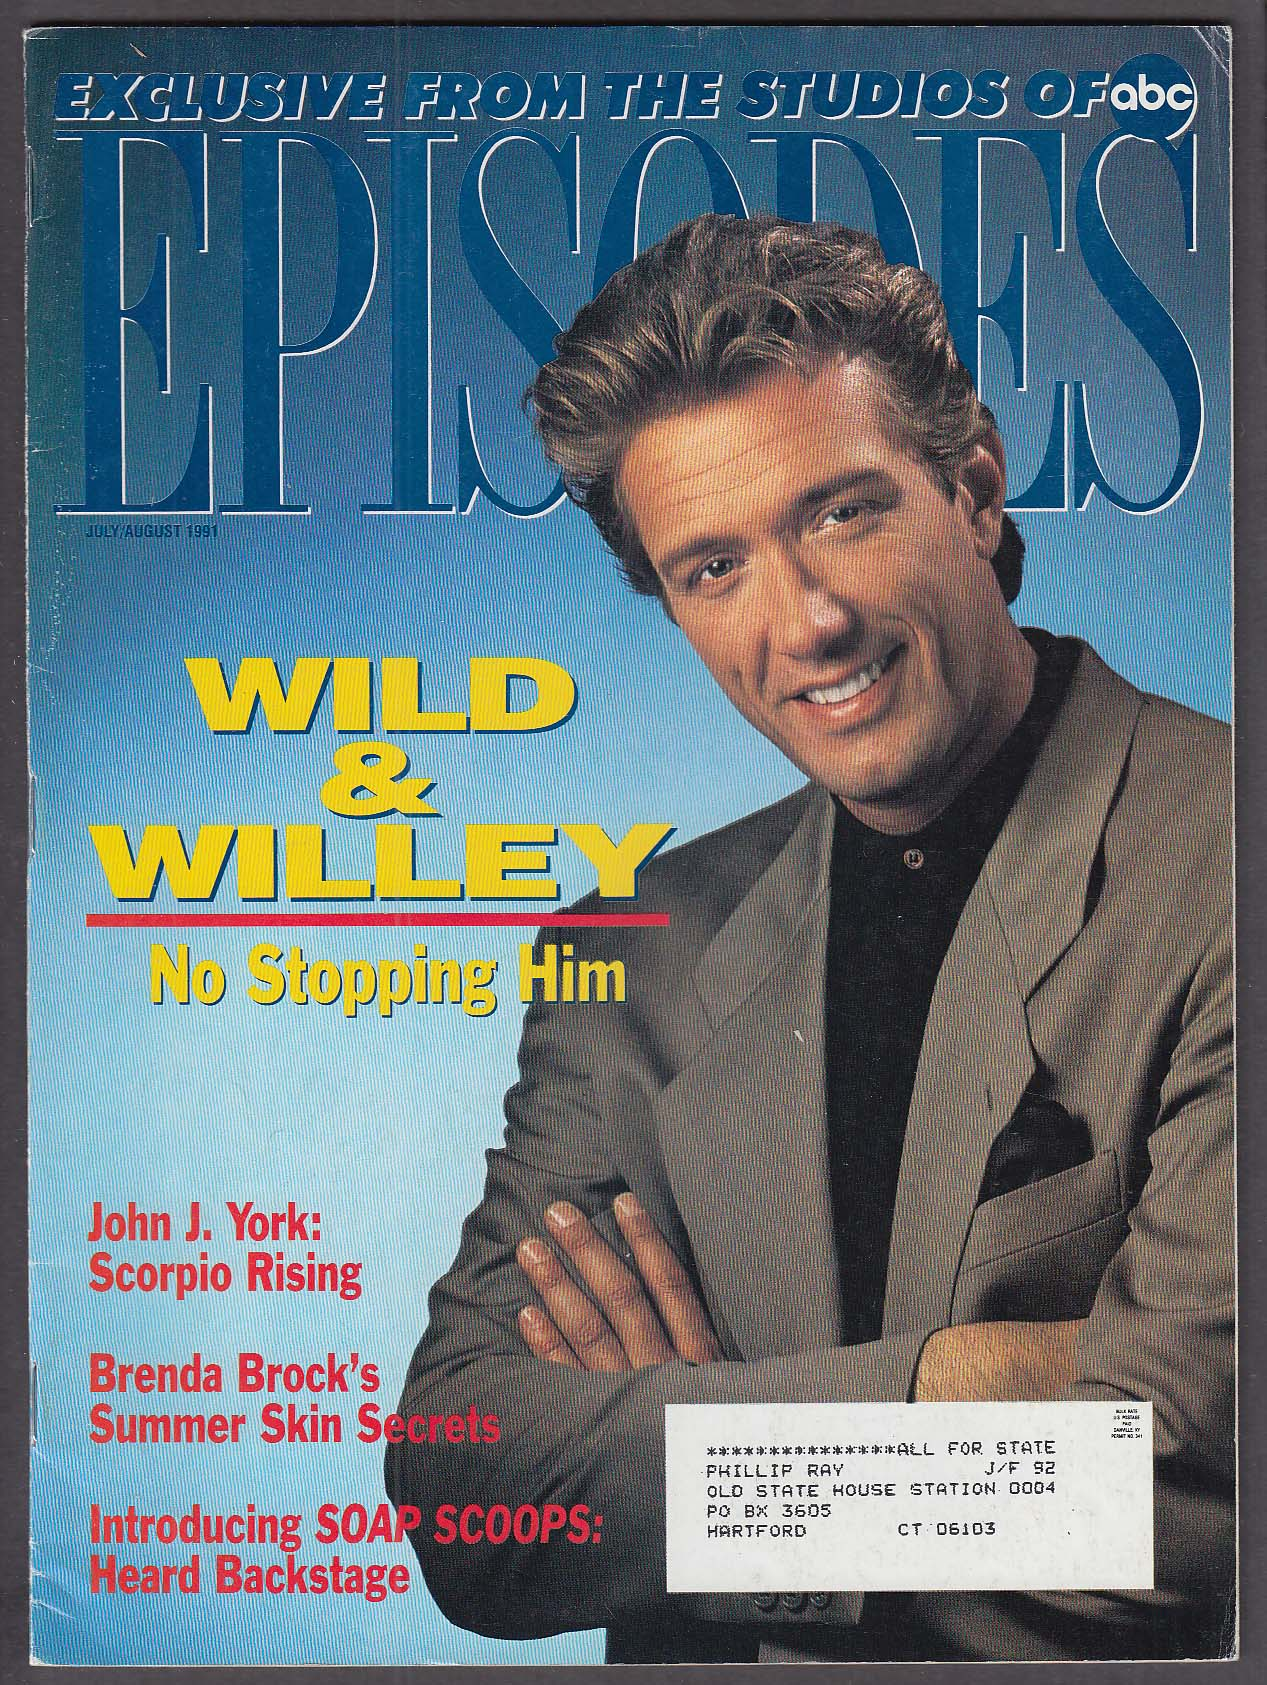 Image for EPISODES Walt Willey Van Eman John J York Brenda Brock ABC 7 1991